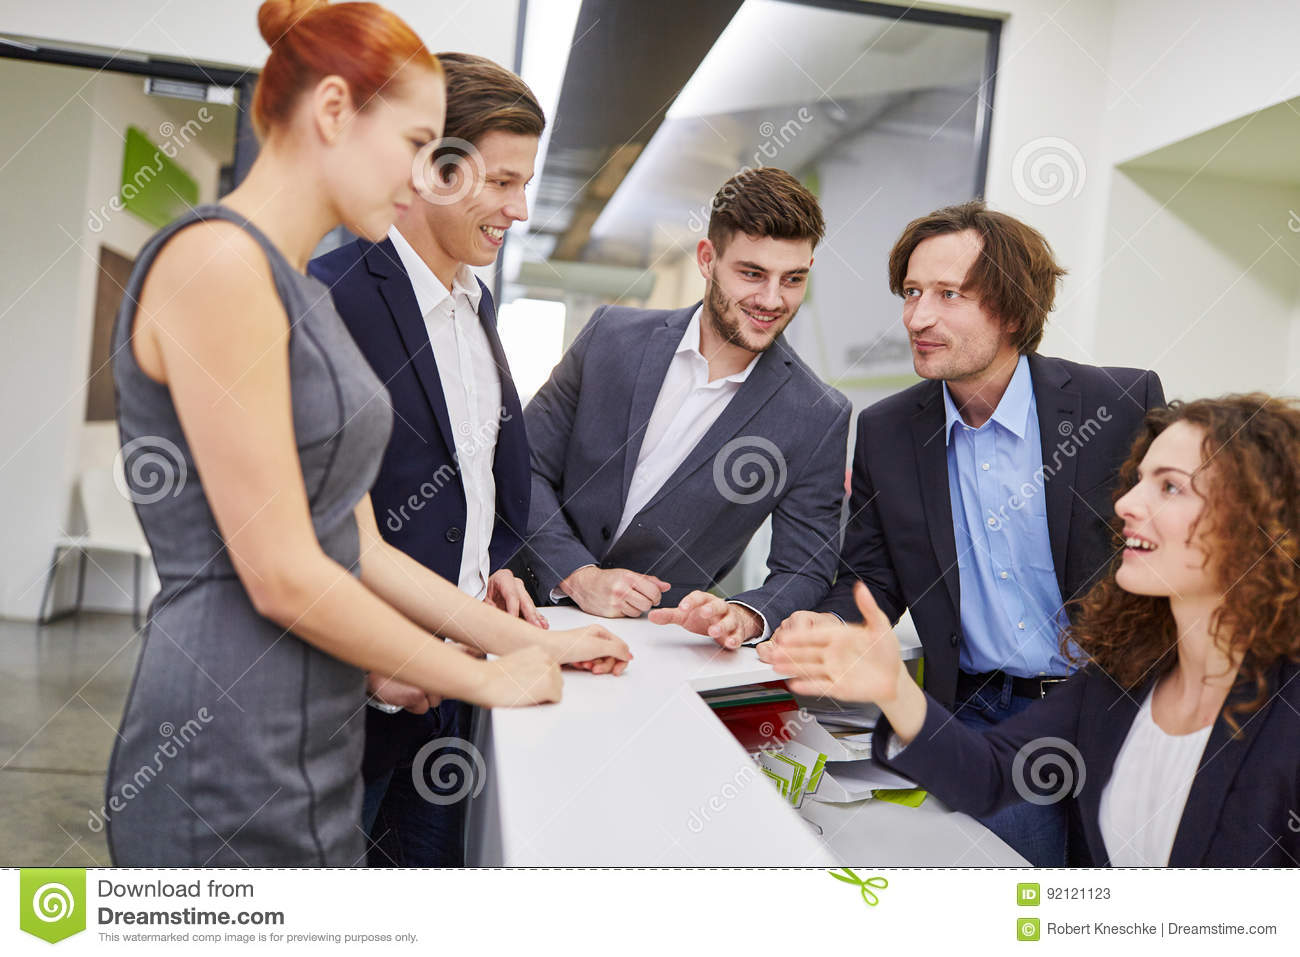 Business people greeting each other stock image image of employee download business people greeting each other stock image image of employee start 92121123 m4hsunfo